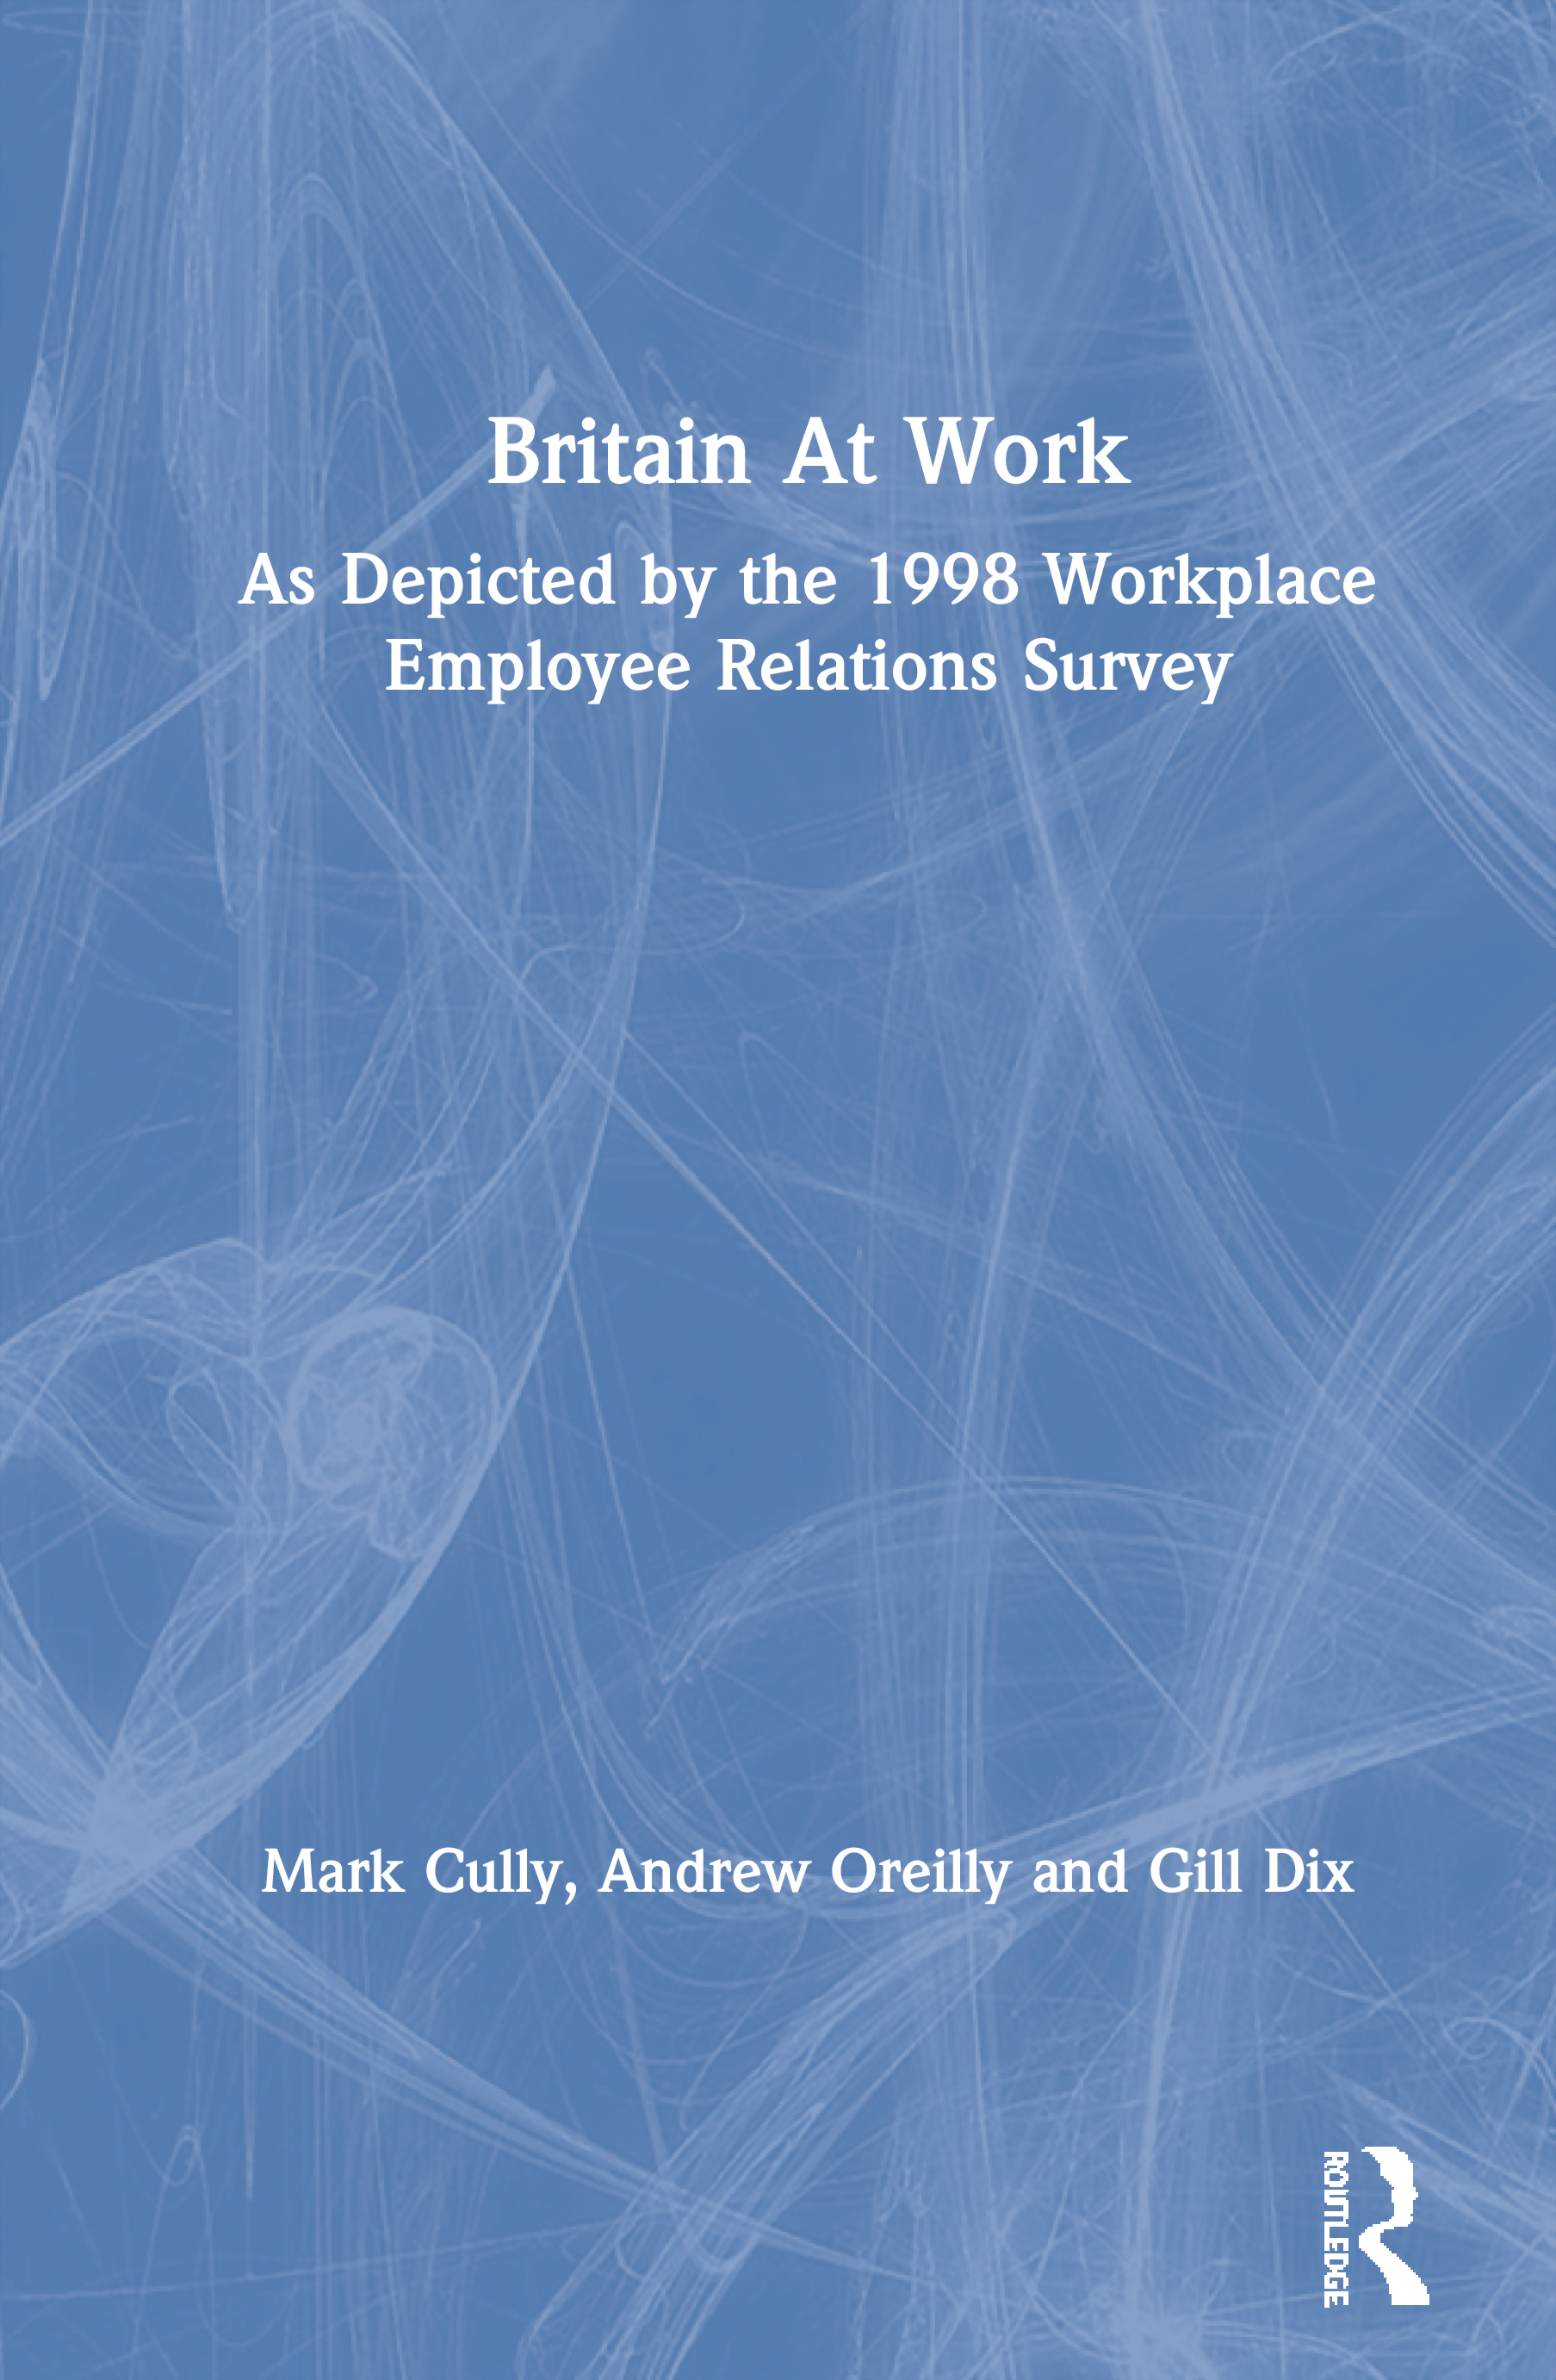 Britain At Work: As Depicted by the 1998 Workplace Employee Relations Survey, 1st Edition (Hardback) book cover